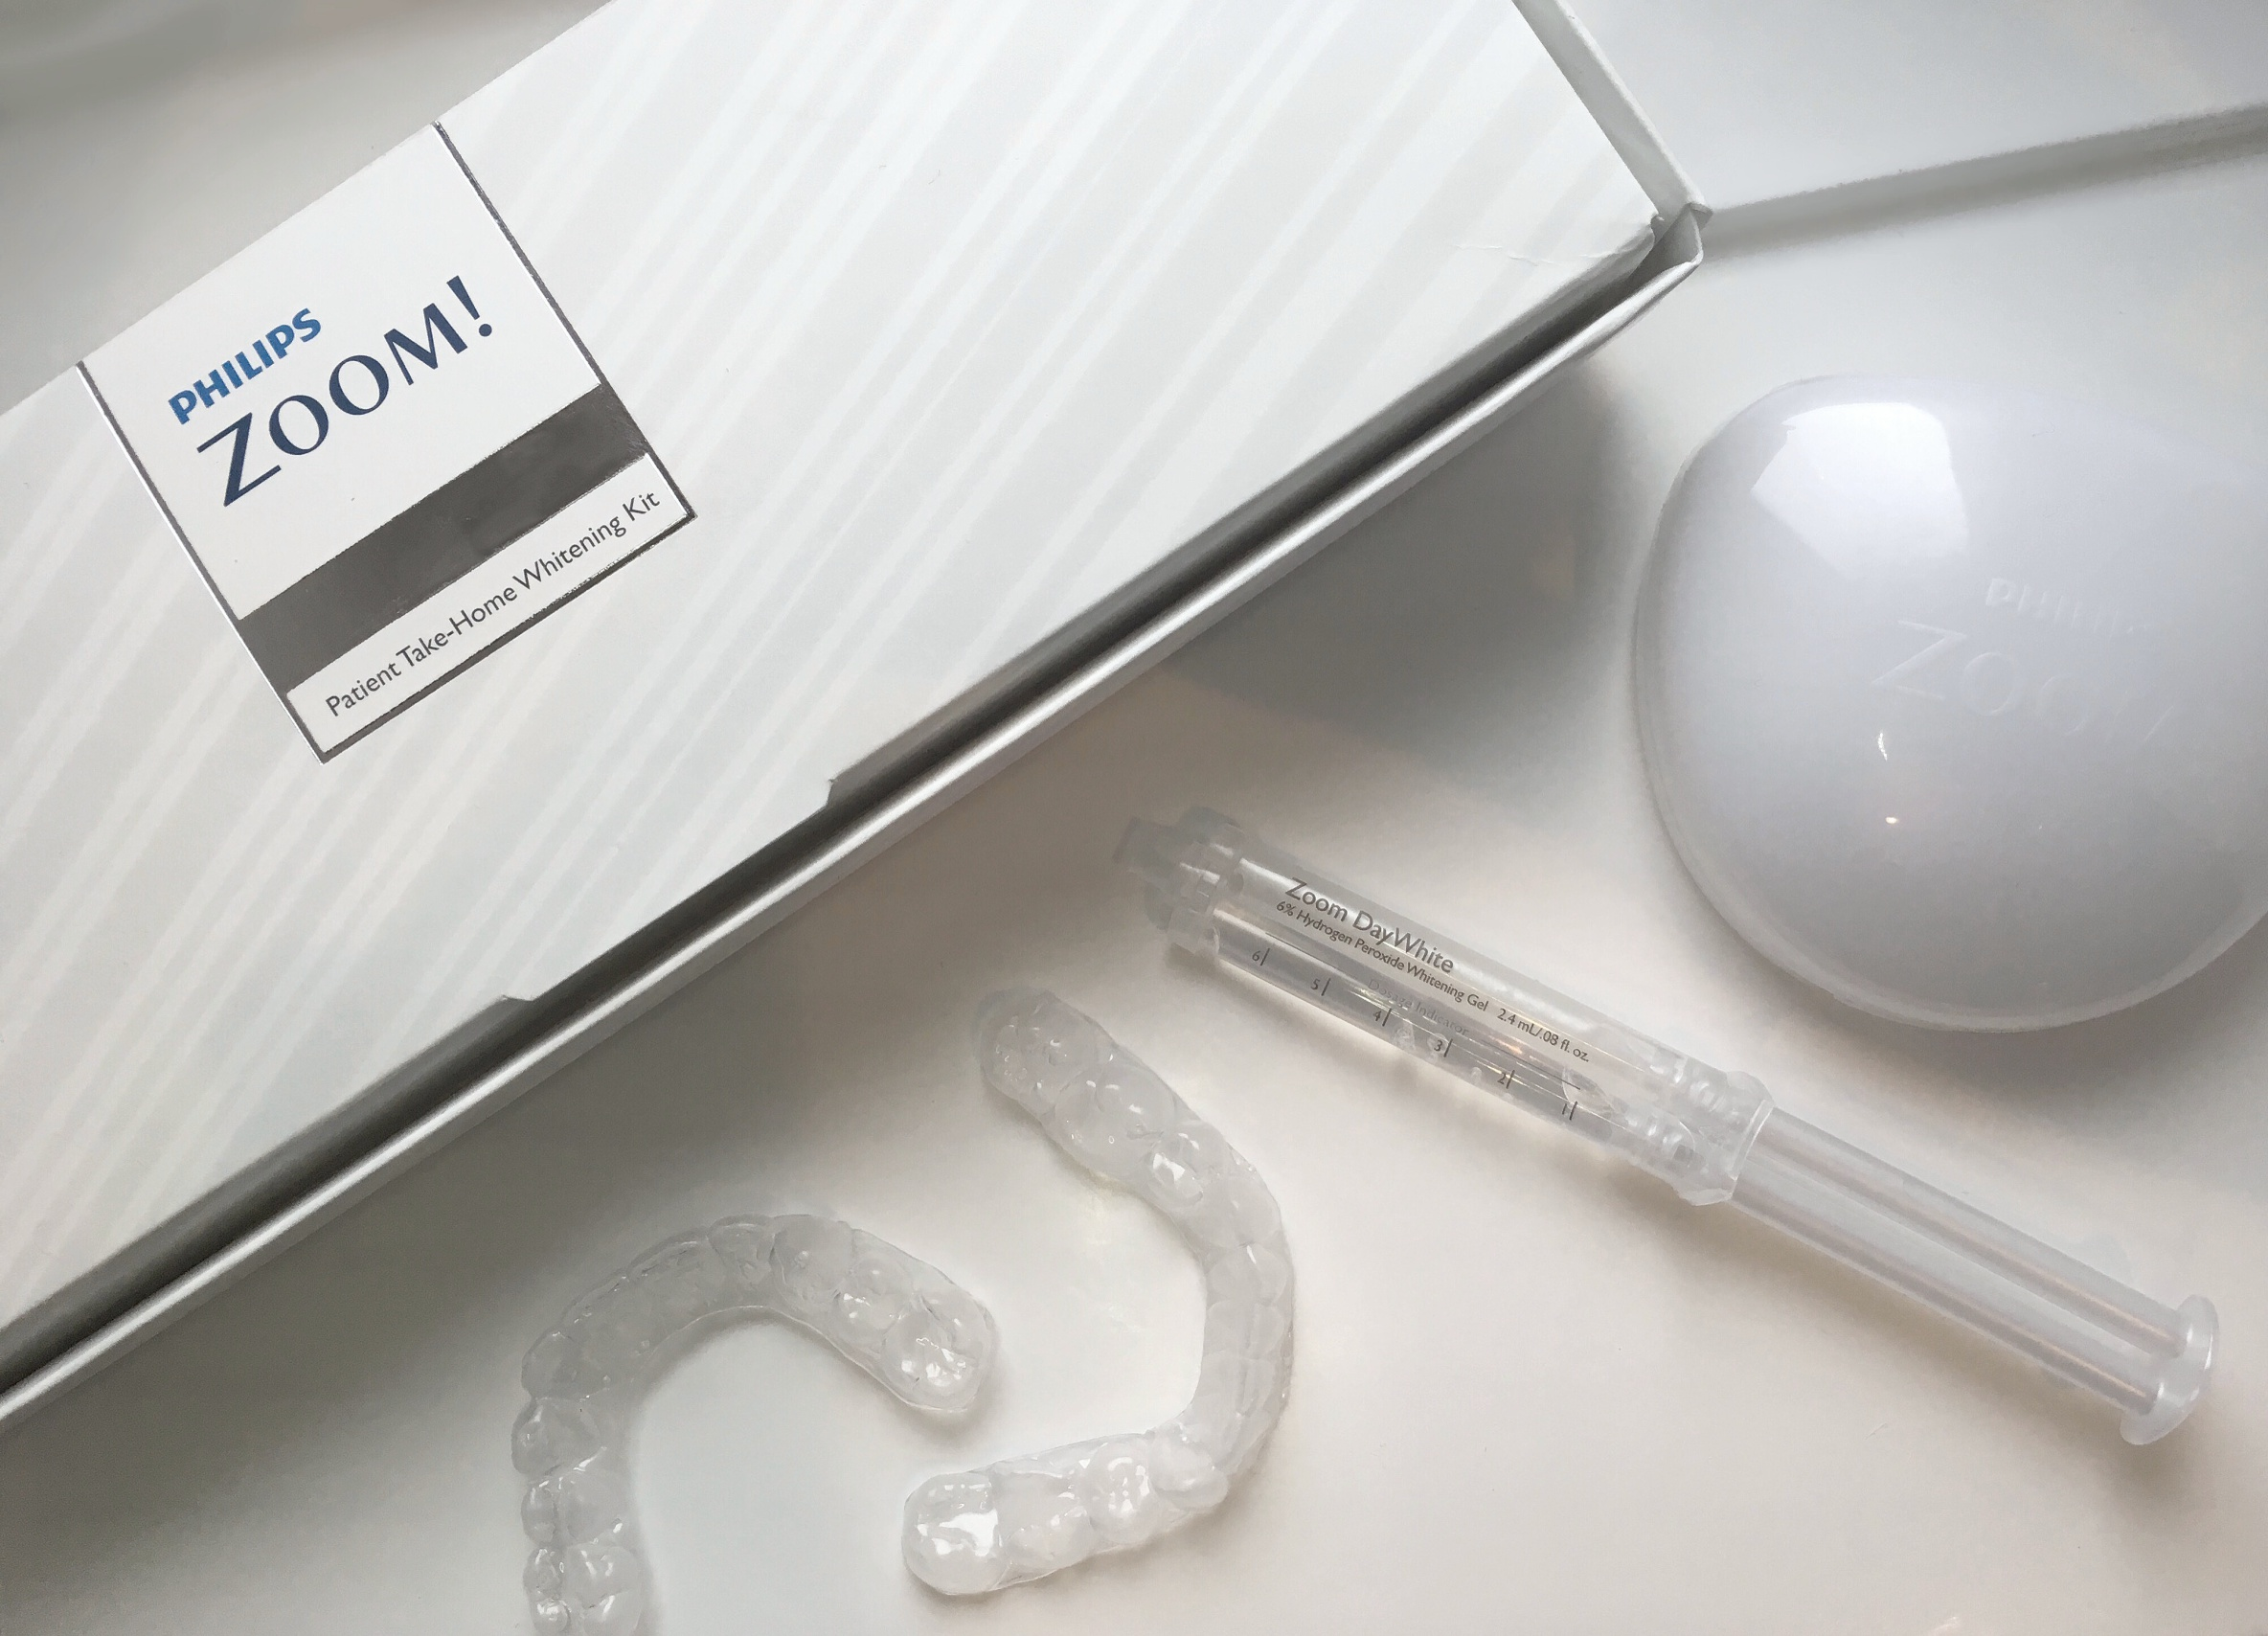 Philips Zoom Teeth Whitening Review The Everyday Man